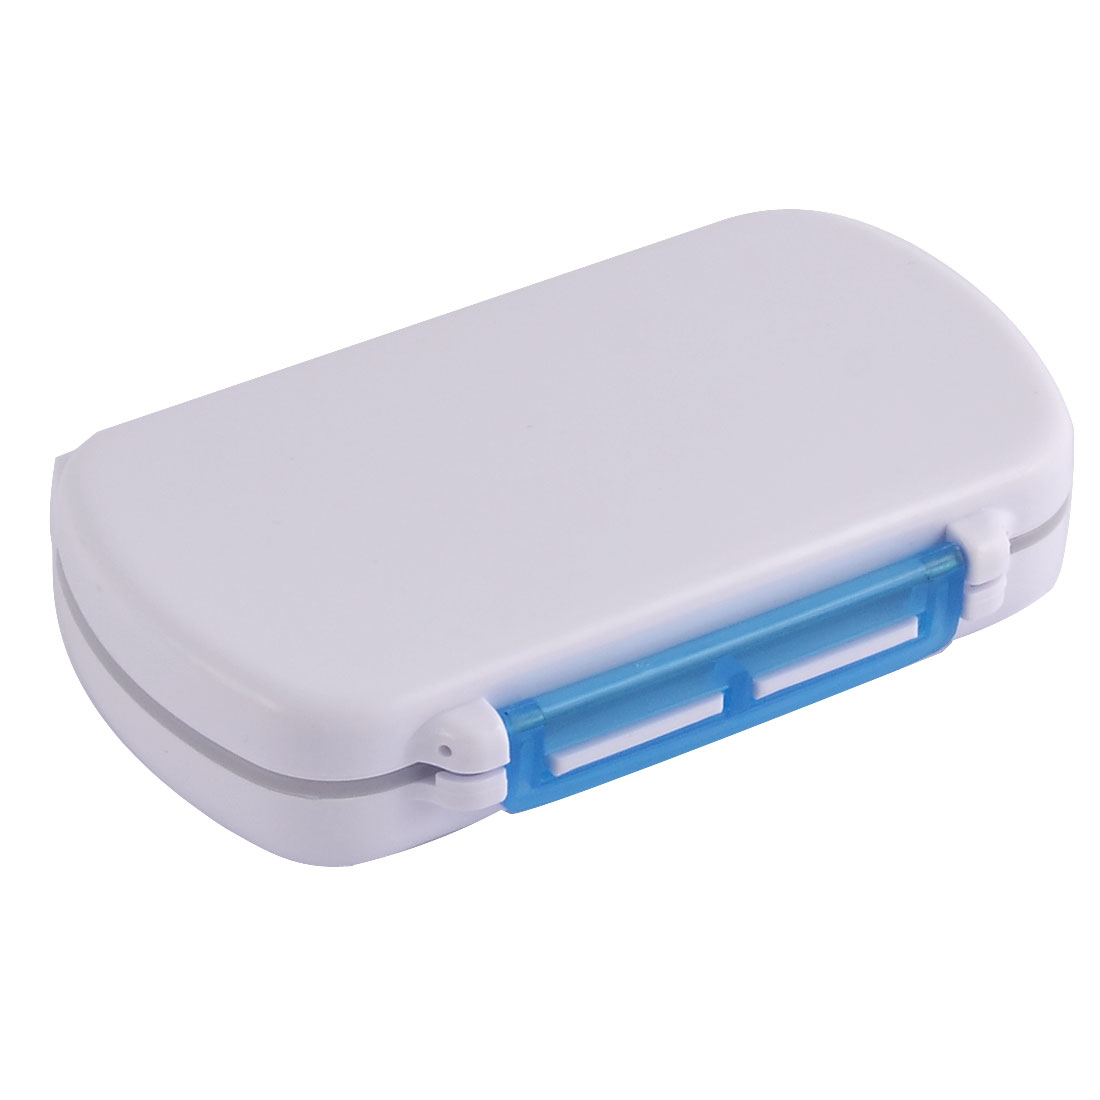 Plastic Square Shape Pills Medicine Storage Dispenser Box Case Clear Blue